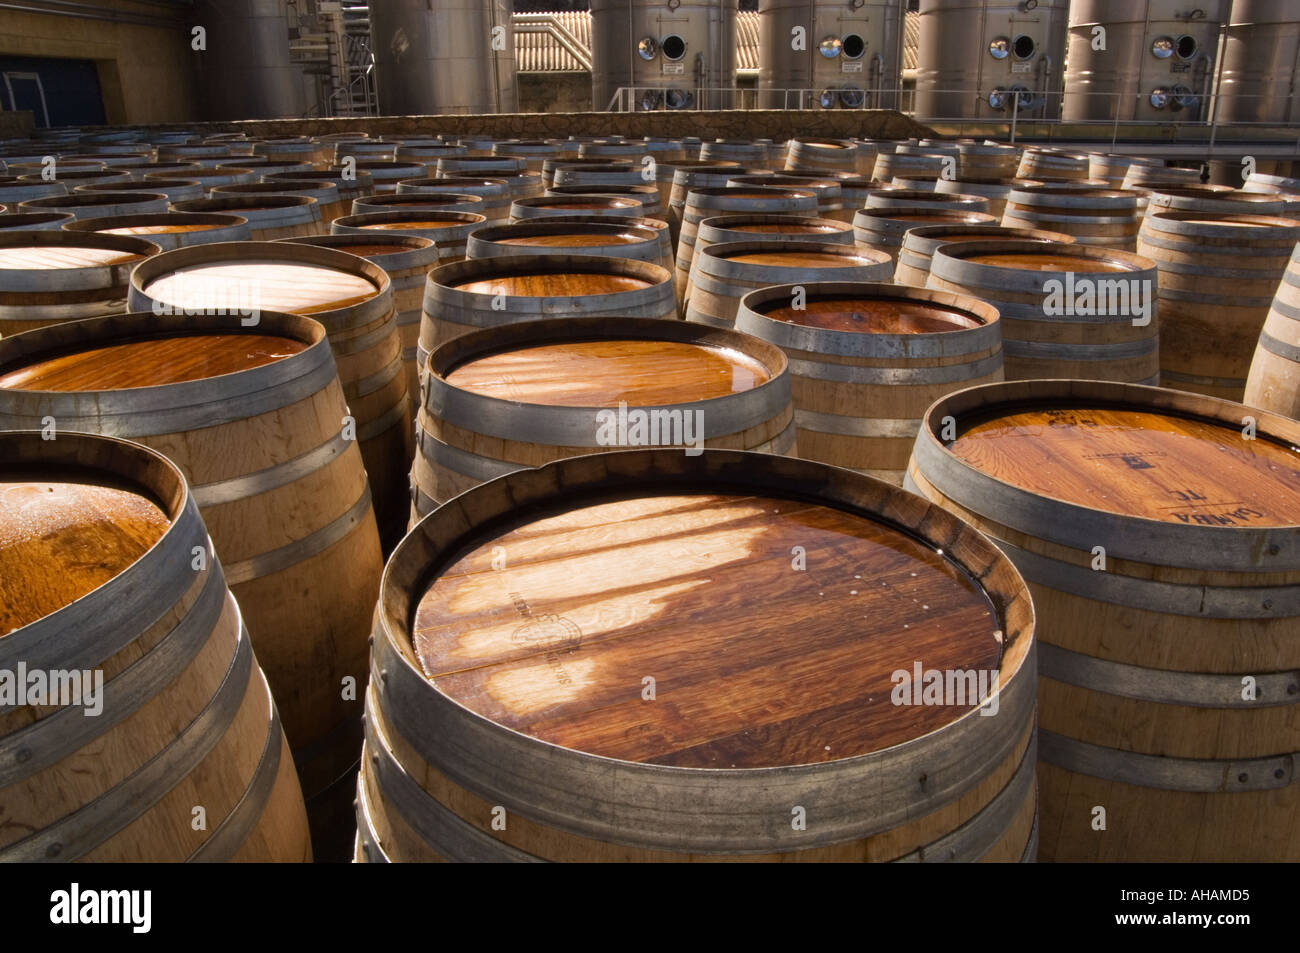 oak wine barrels. stock photo rows of oak wine barrels with stainless steel fermentation tanks in the background at regaliali estate winery sicily